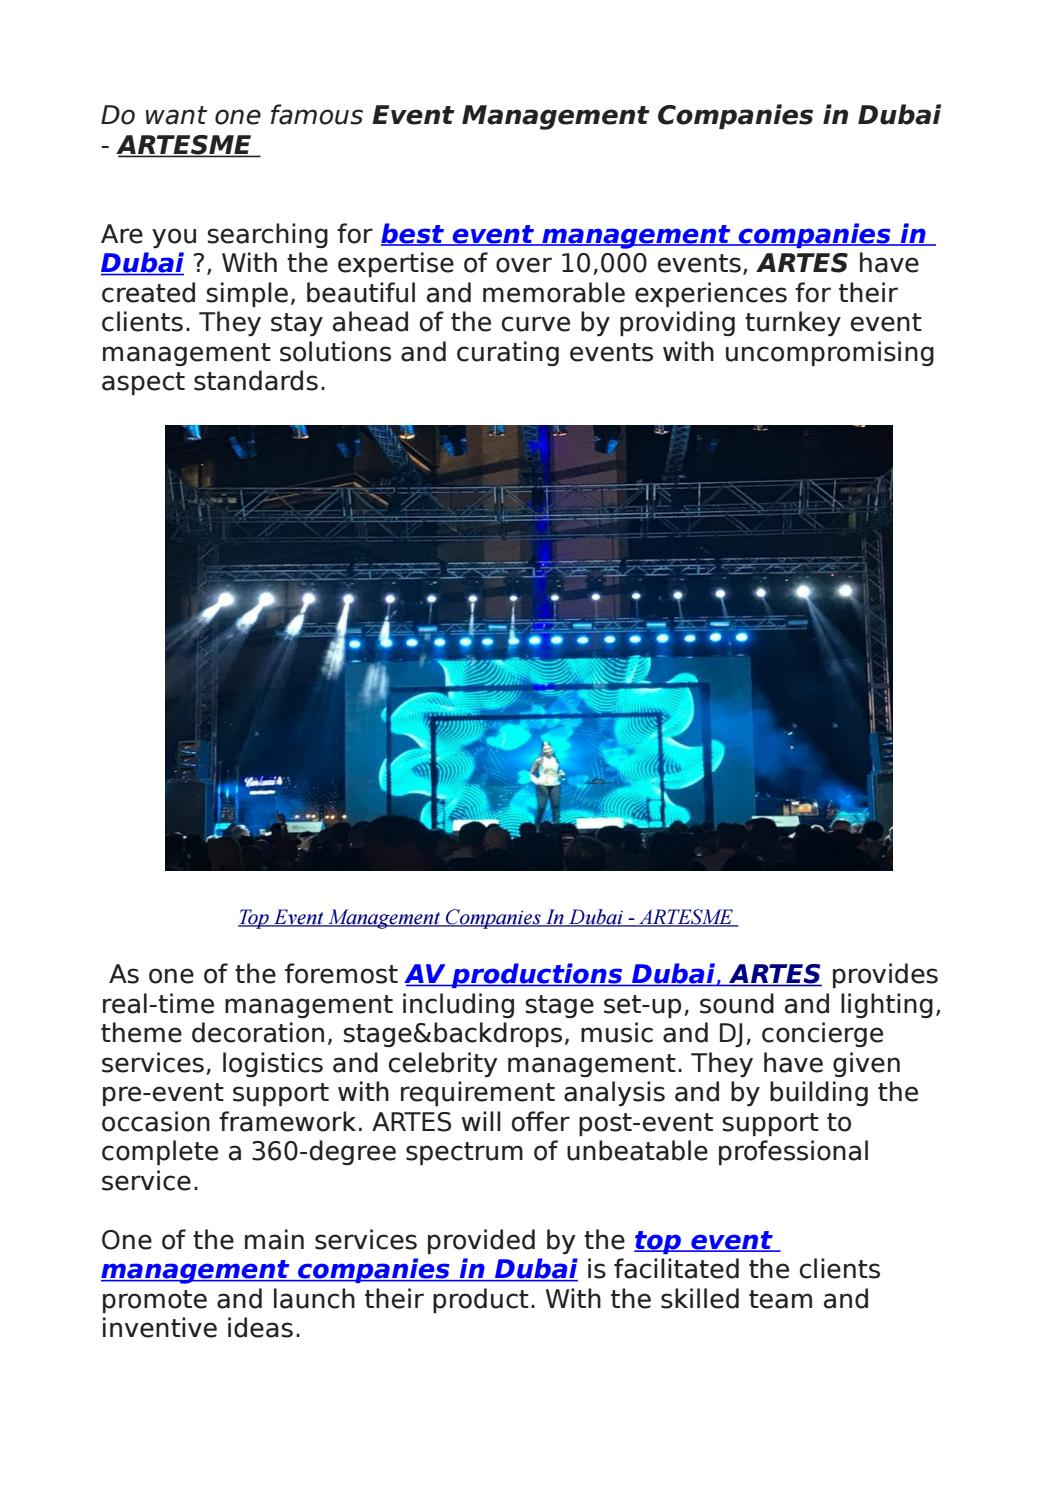 Do want one famous Event Management Companies in Dubai